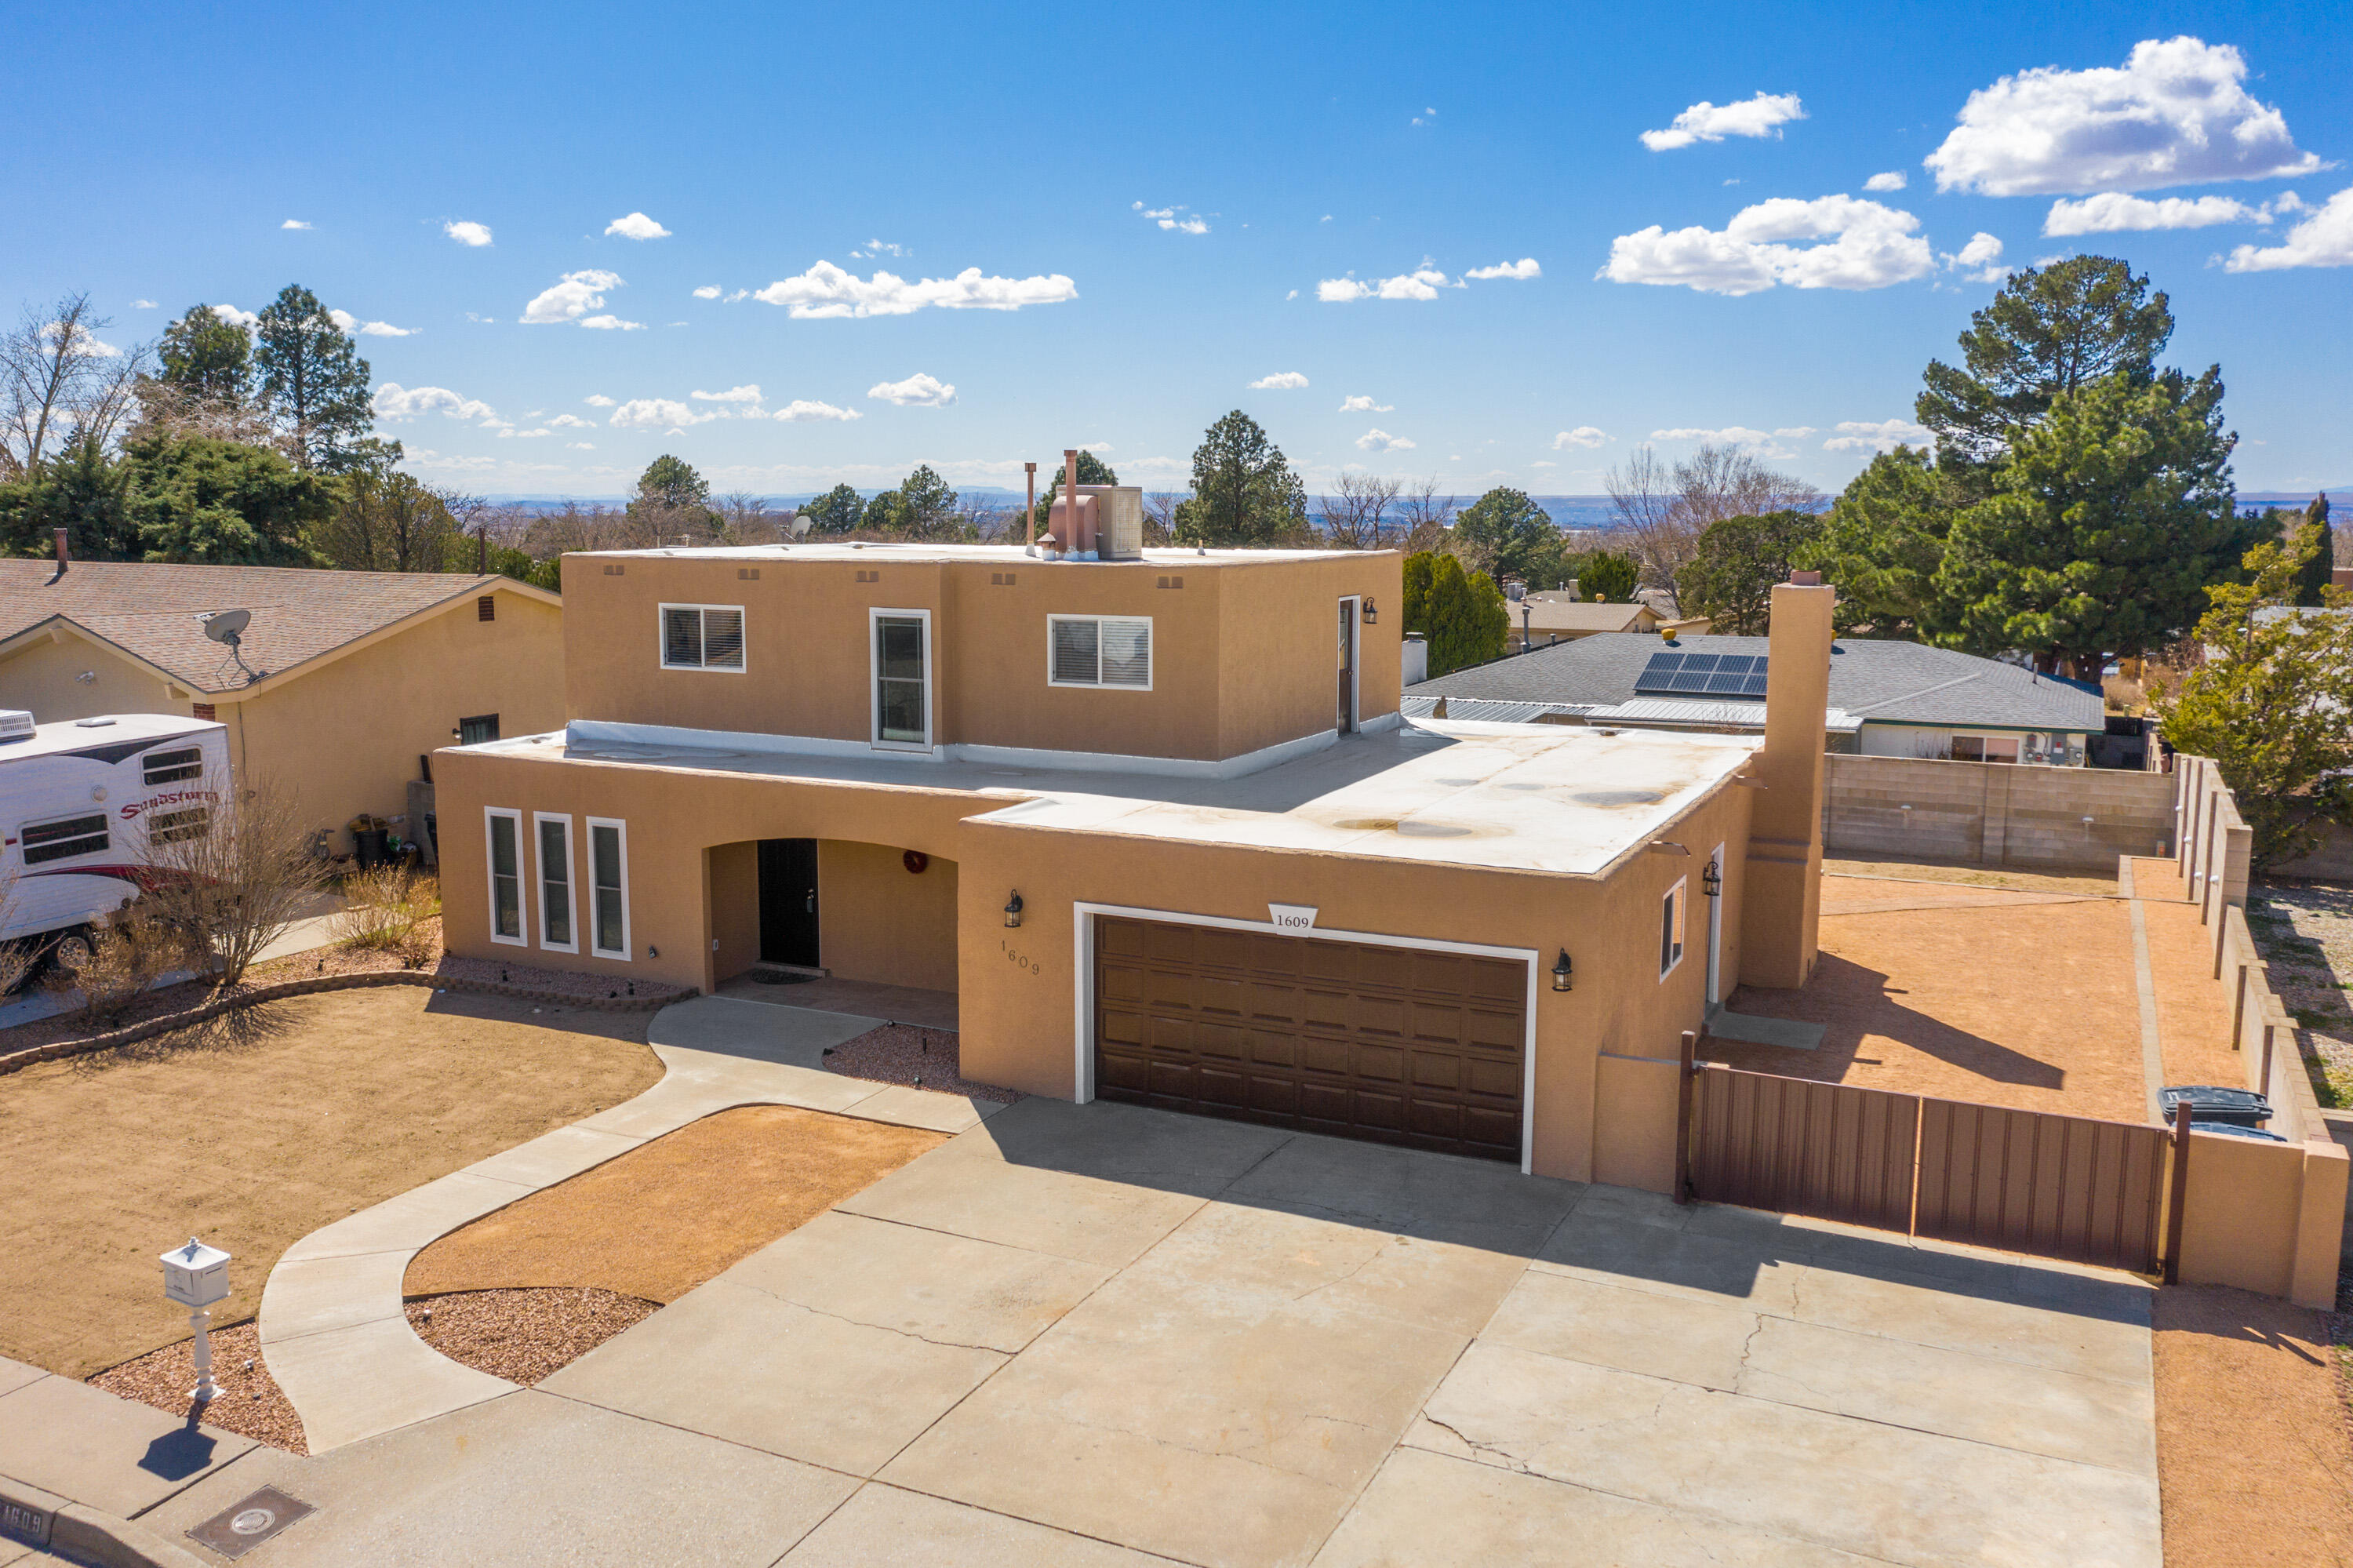 This 5-bed, 2-bath home has been remodeled throughout! The kitchen is open to the living area and amenities include custom cabinetry, granite counters, glass tile backsplash, s/s appliances, under sink water filtration, breakfast bar and large pantry. New carpet, wood and tile flooring throughout. Updated LED light fixtures and ceiling fans. Fresh paint and stucco. Newer evaporative cooler (2019). Updated doors and windows. 1 bedroom and remodeled bathroom are downstairs; the master, 3 guest bedrooms and remodeled bathroom are upstairs. The TPO roof (2020) is still under warranty! SW gravel landscaping in the front and backyards. RV parking. Please click ''More'' for additional information . . .